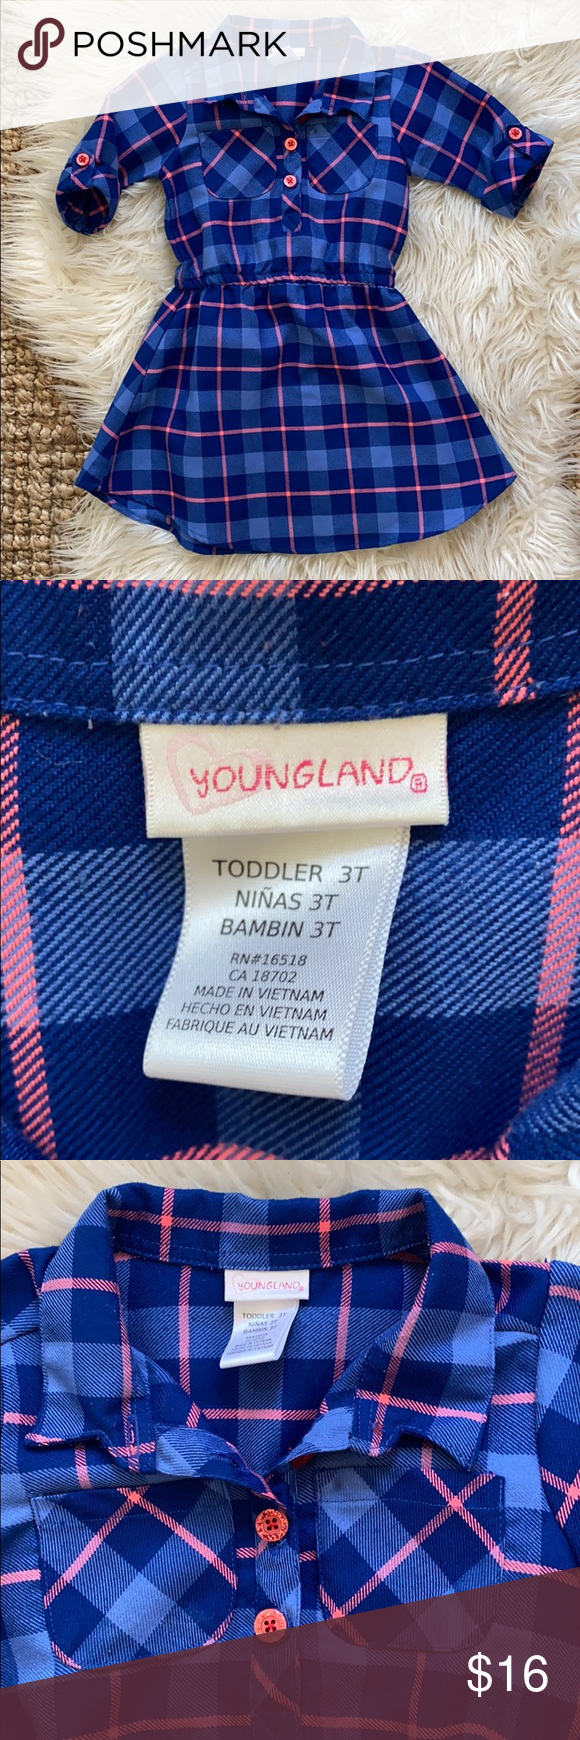 Youngland swing shirt dress girls blue pink plaid Youngland blue and pink plaid swing skirt shirt dress. Girls size 3T. Glittery pink buttons. Elastic waist. Faux button cuff sleeves. A little bit of pilling but in great condition. Smoke free home. Bundle and save. Youngland Dresses